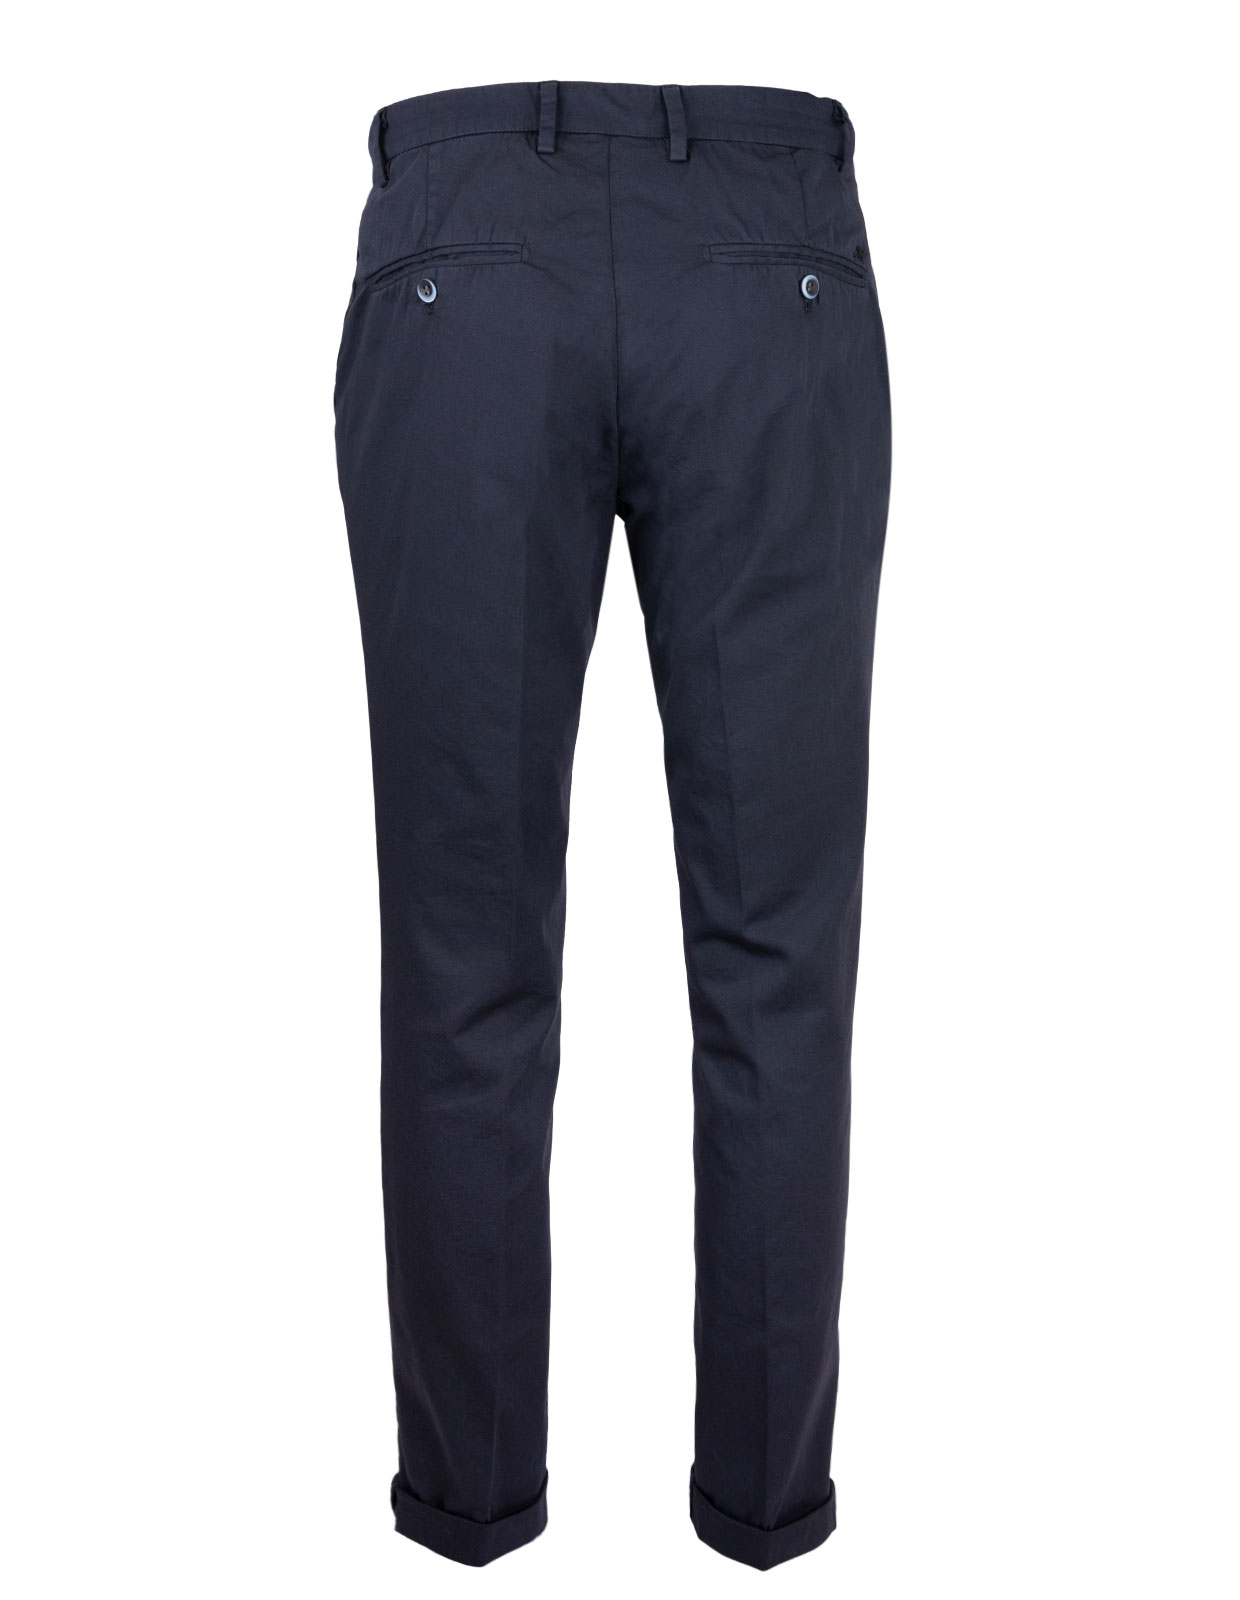 Milano Slim Chinos Cotton Satin Stretch Blue Navy Stl 48